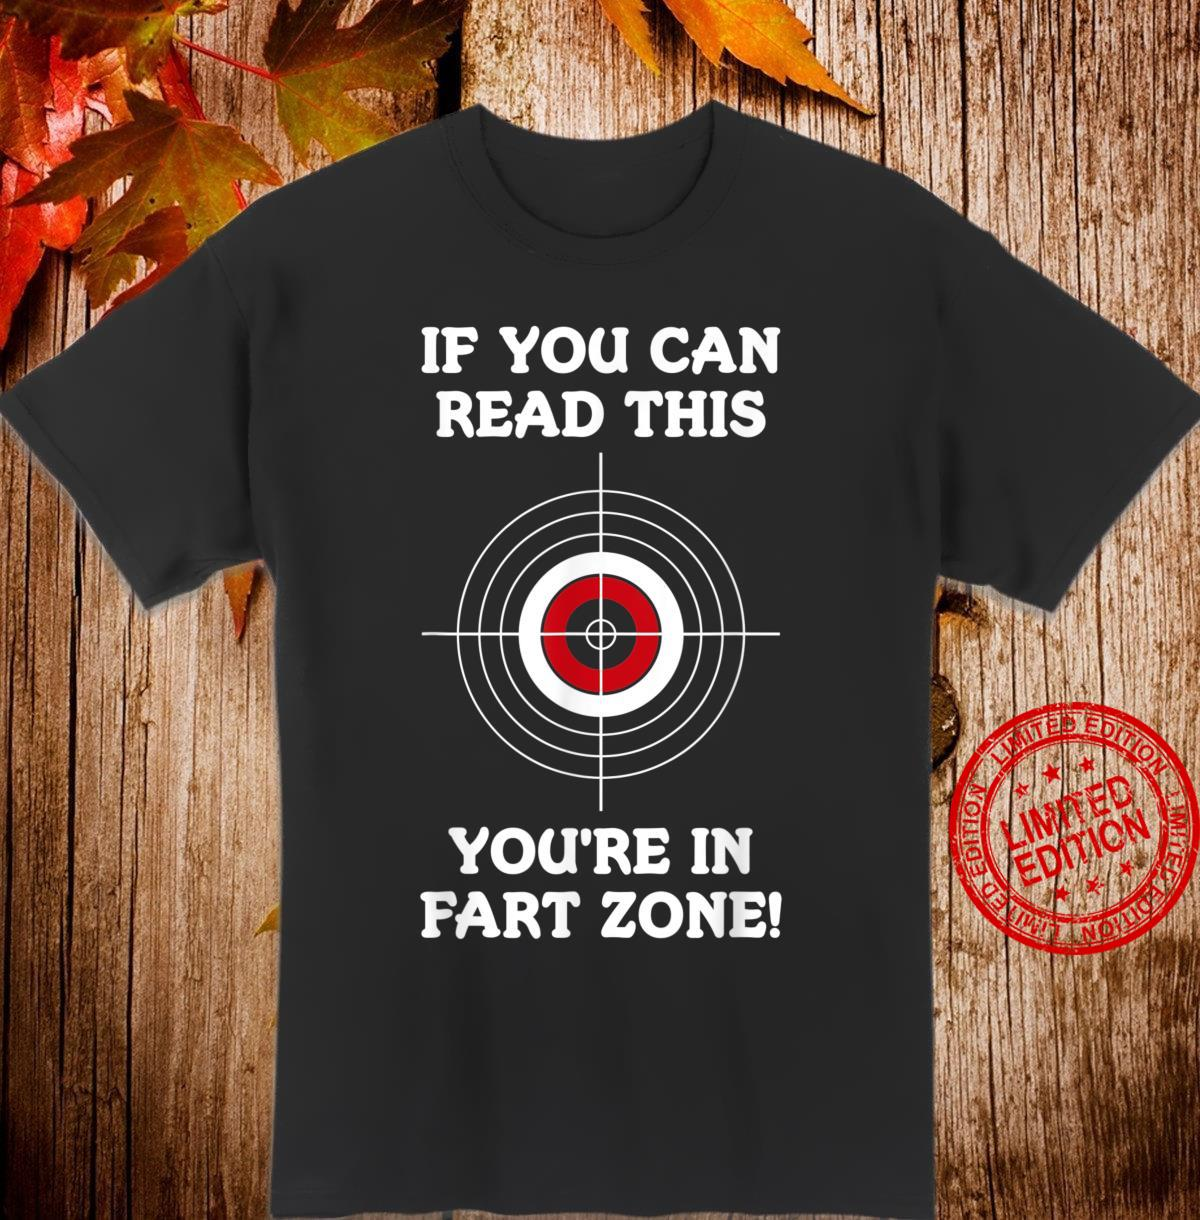 If You Can Read This You're In Fart Zone Quote Humor Shirt